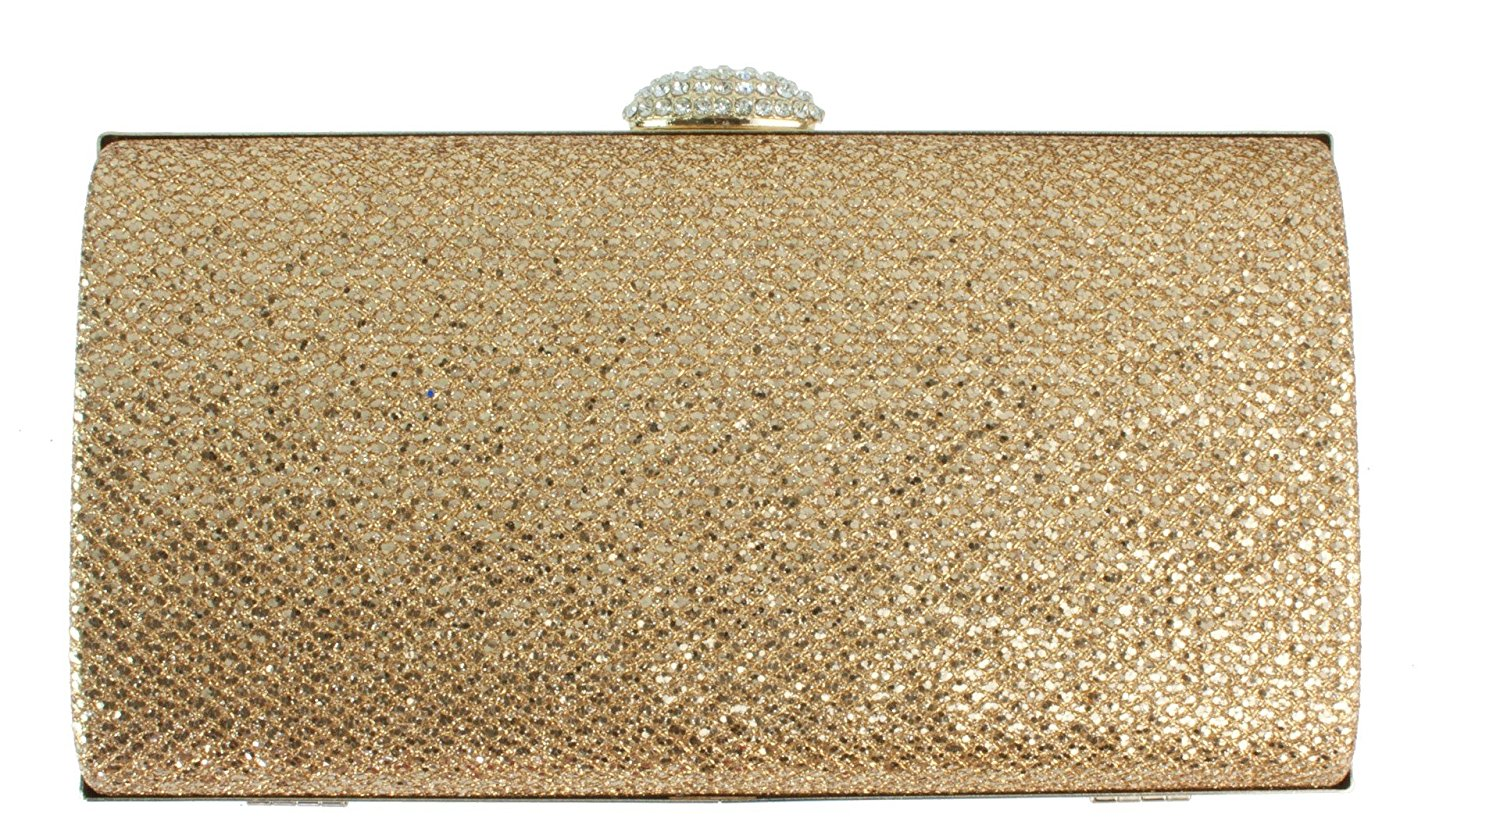 Girly HandBags Women's Glitter Hard Case Box Clutch Bag